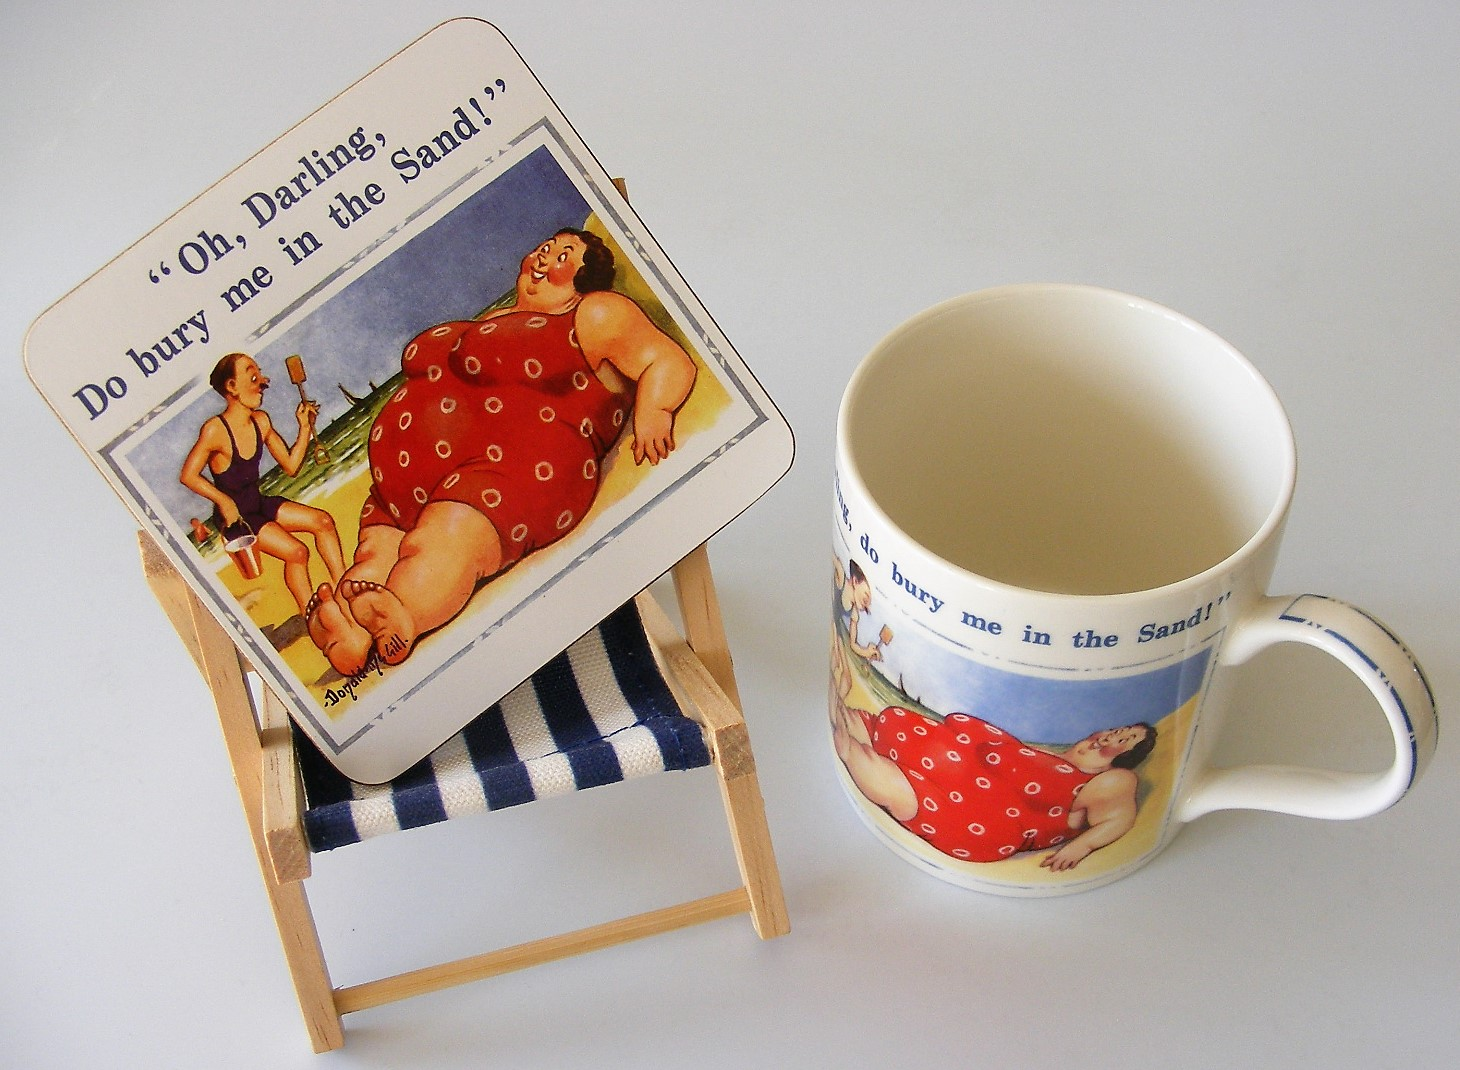 """Oh, darling do bury me in the sand"" - McGill Saucy Postcard China Mug and Coaster"